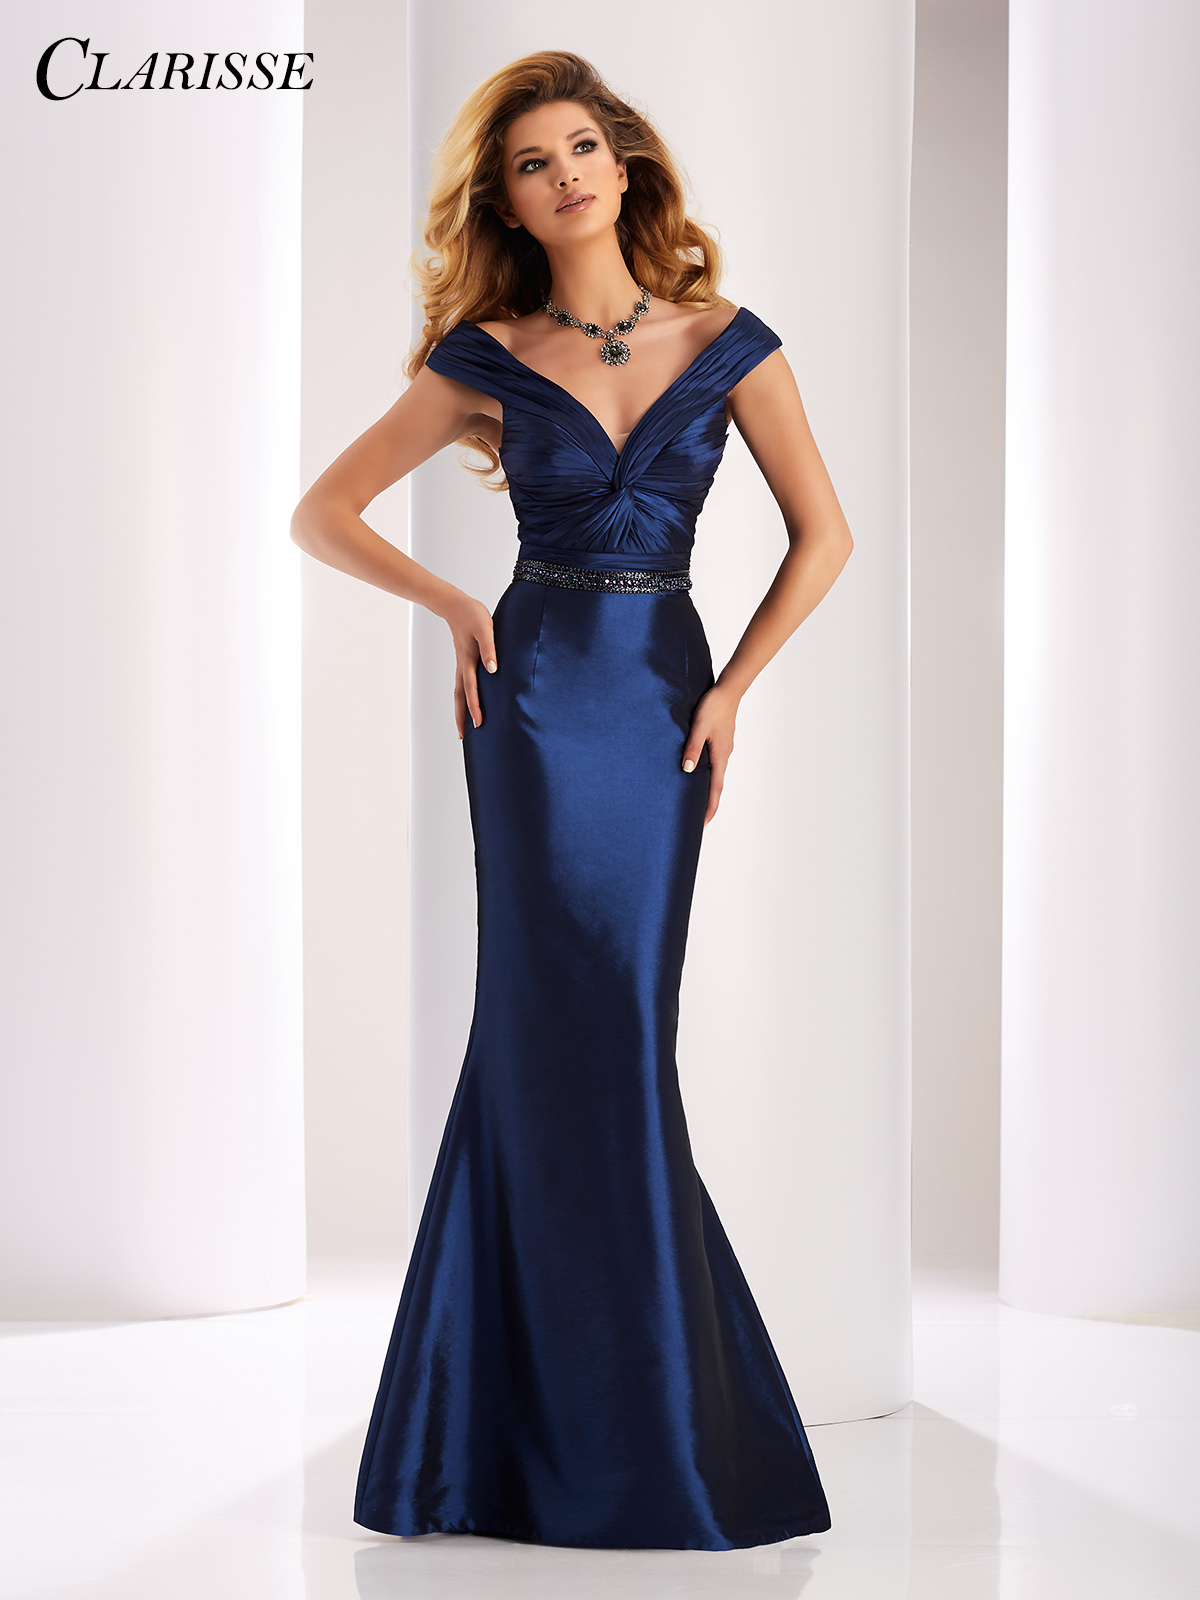 Clarisse Formal Gown 4862 | Promgirl.net